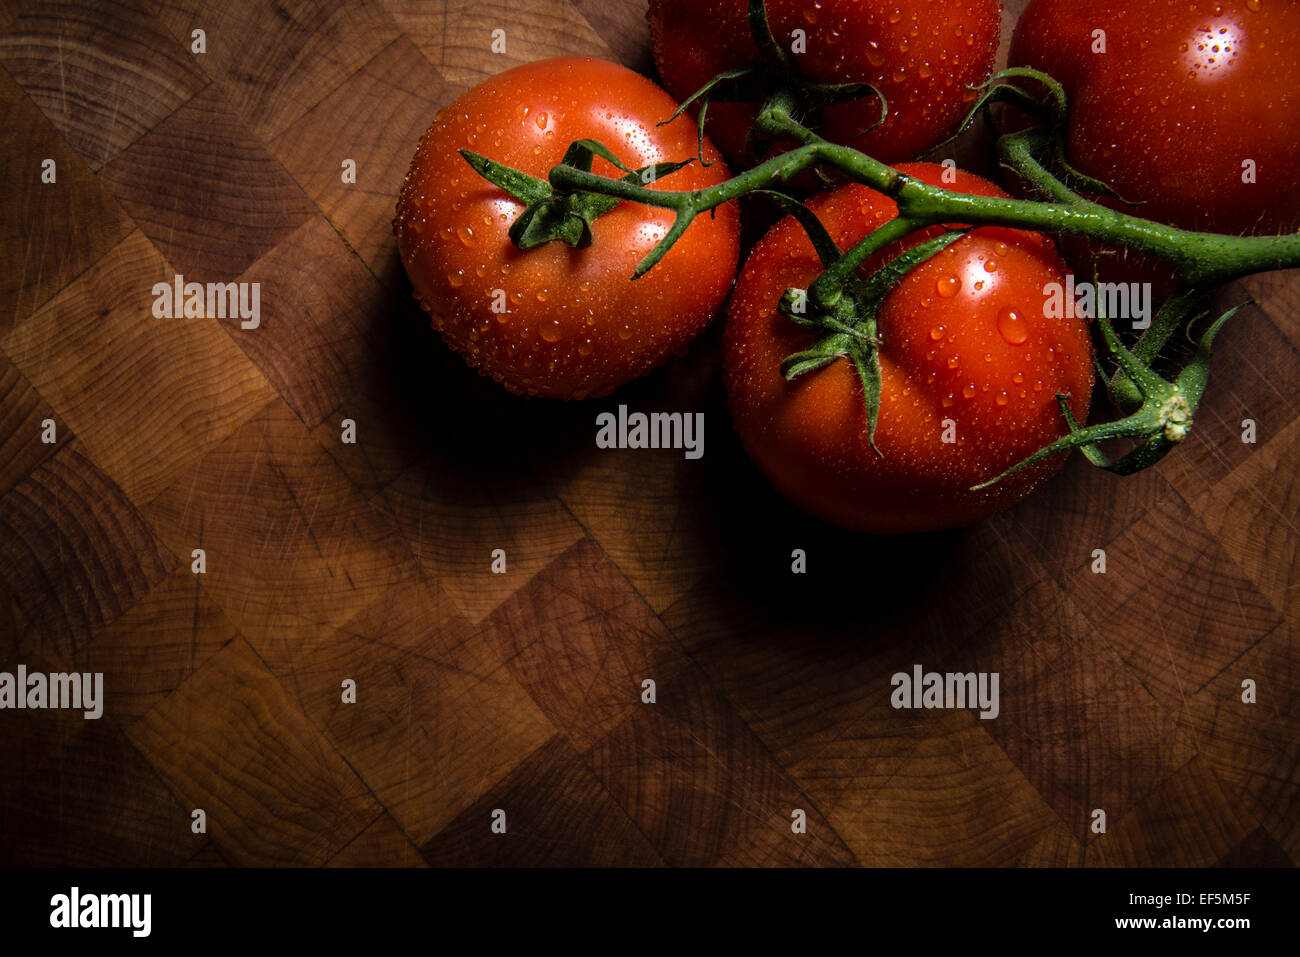 Wet tomatoes on a chopping board - Stock Image